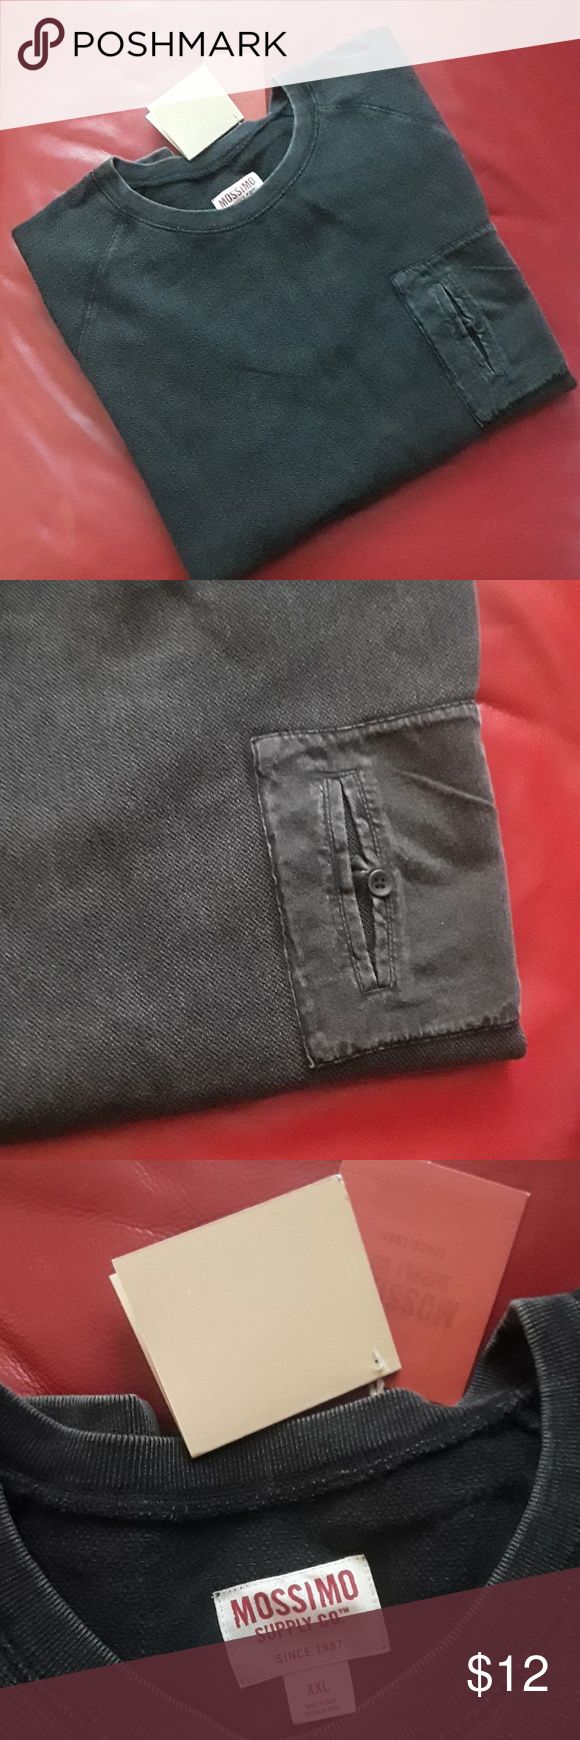 Mossimo Supply CO. Sweater (men's) Mossimo Supply CO. Sweater (men's),100%cotton, color gray, long sleeves, pocket on front Mossimo Supply Co Sweaters Crewneck